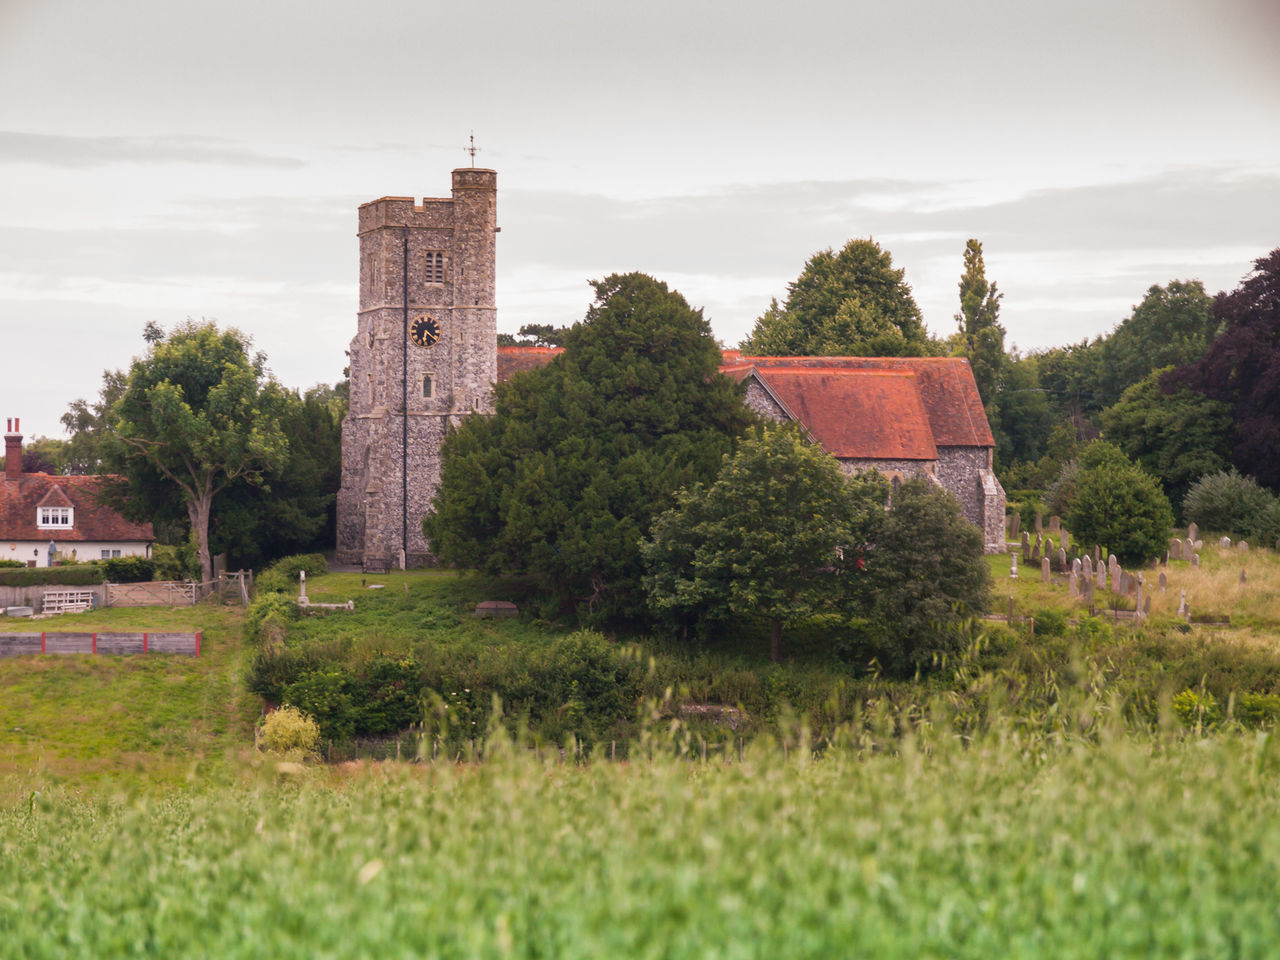 architecture, tree, history, built structure, building exterior, grass, landscape, outdoors, sky, no people, day, nature